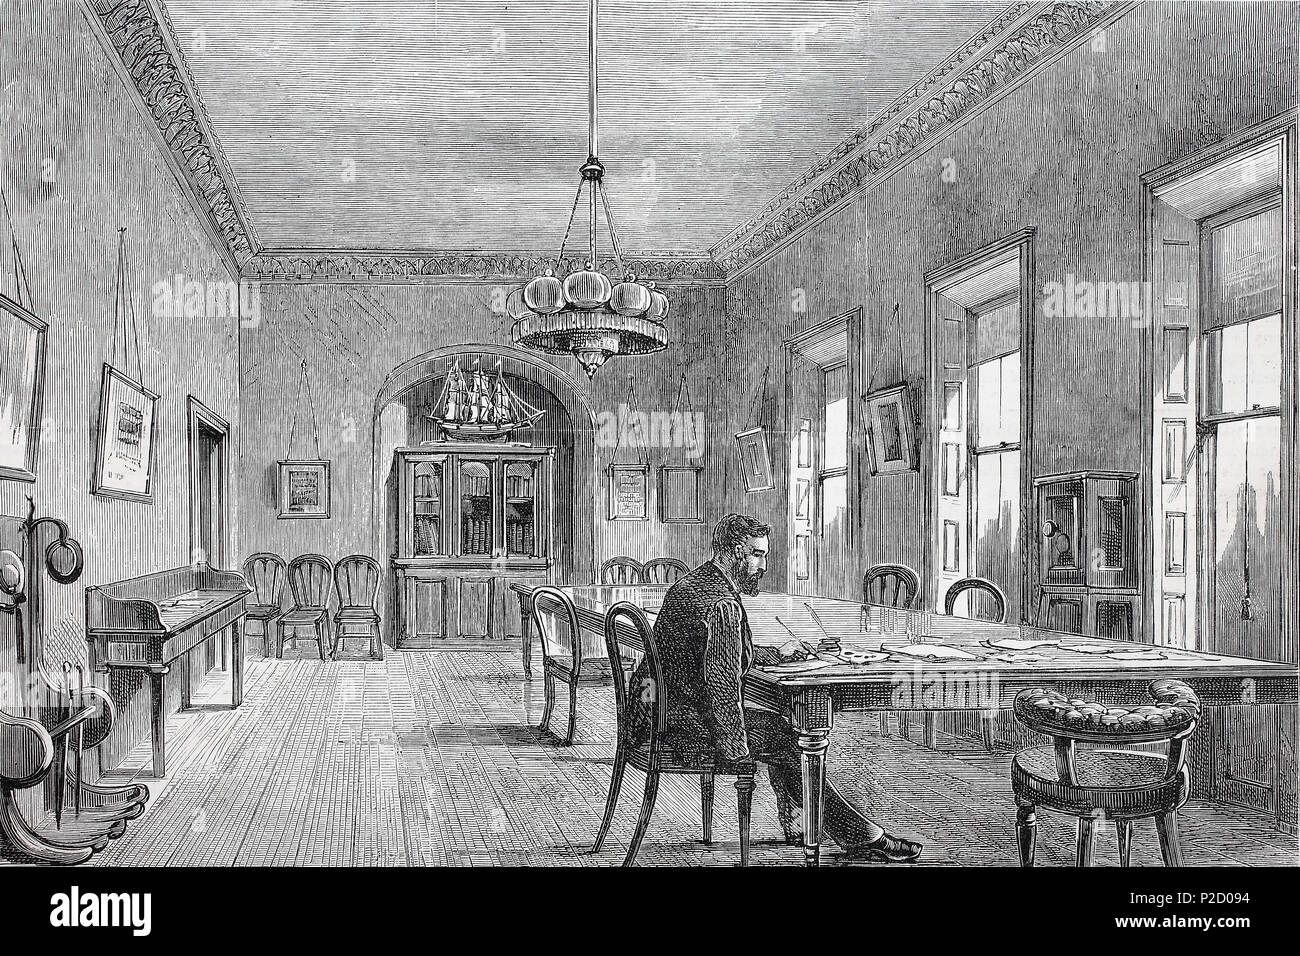 Ireland, the new committee-room of the land-league in Dublin, digital improved reproduction from an original print from the 19th century, 1881 - Stock Image